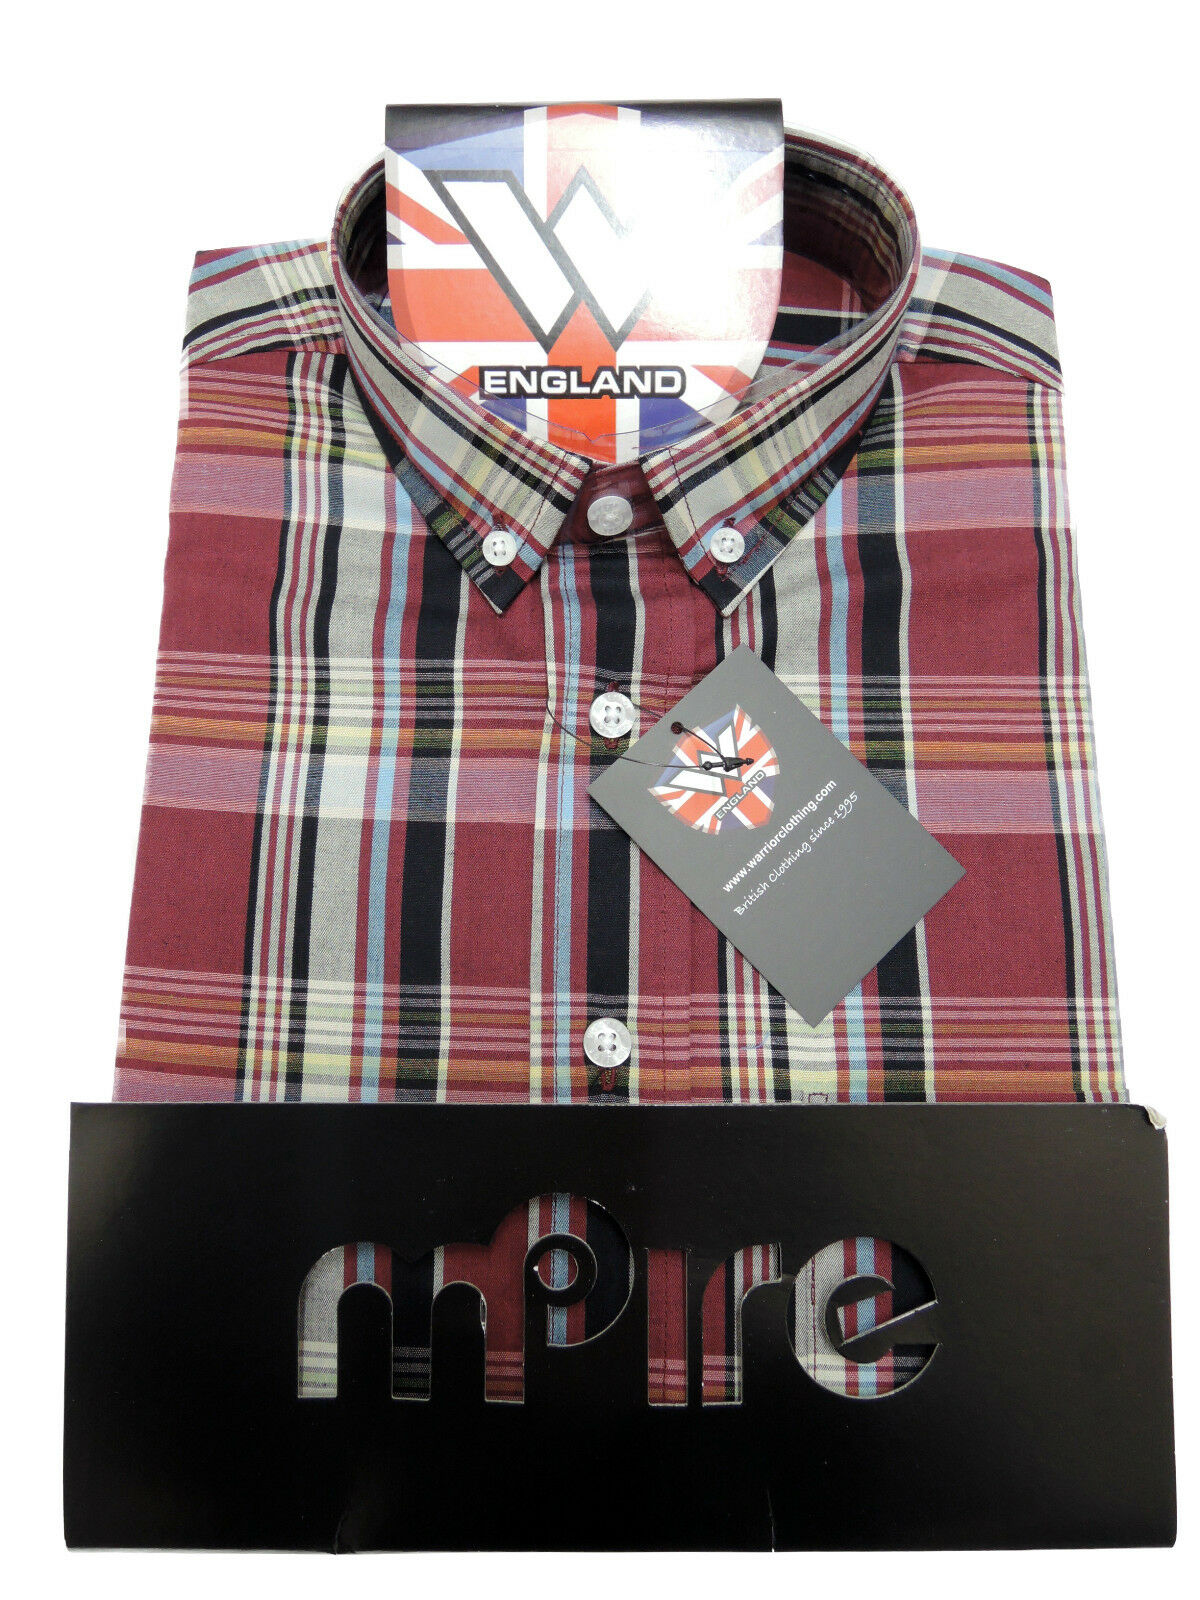 Warrior UK Angleterre SLIM-FIT Button Down Shirt Hawking chemise SLIM-FIT Angleterre skinhead mod SMALL f438c0